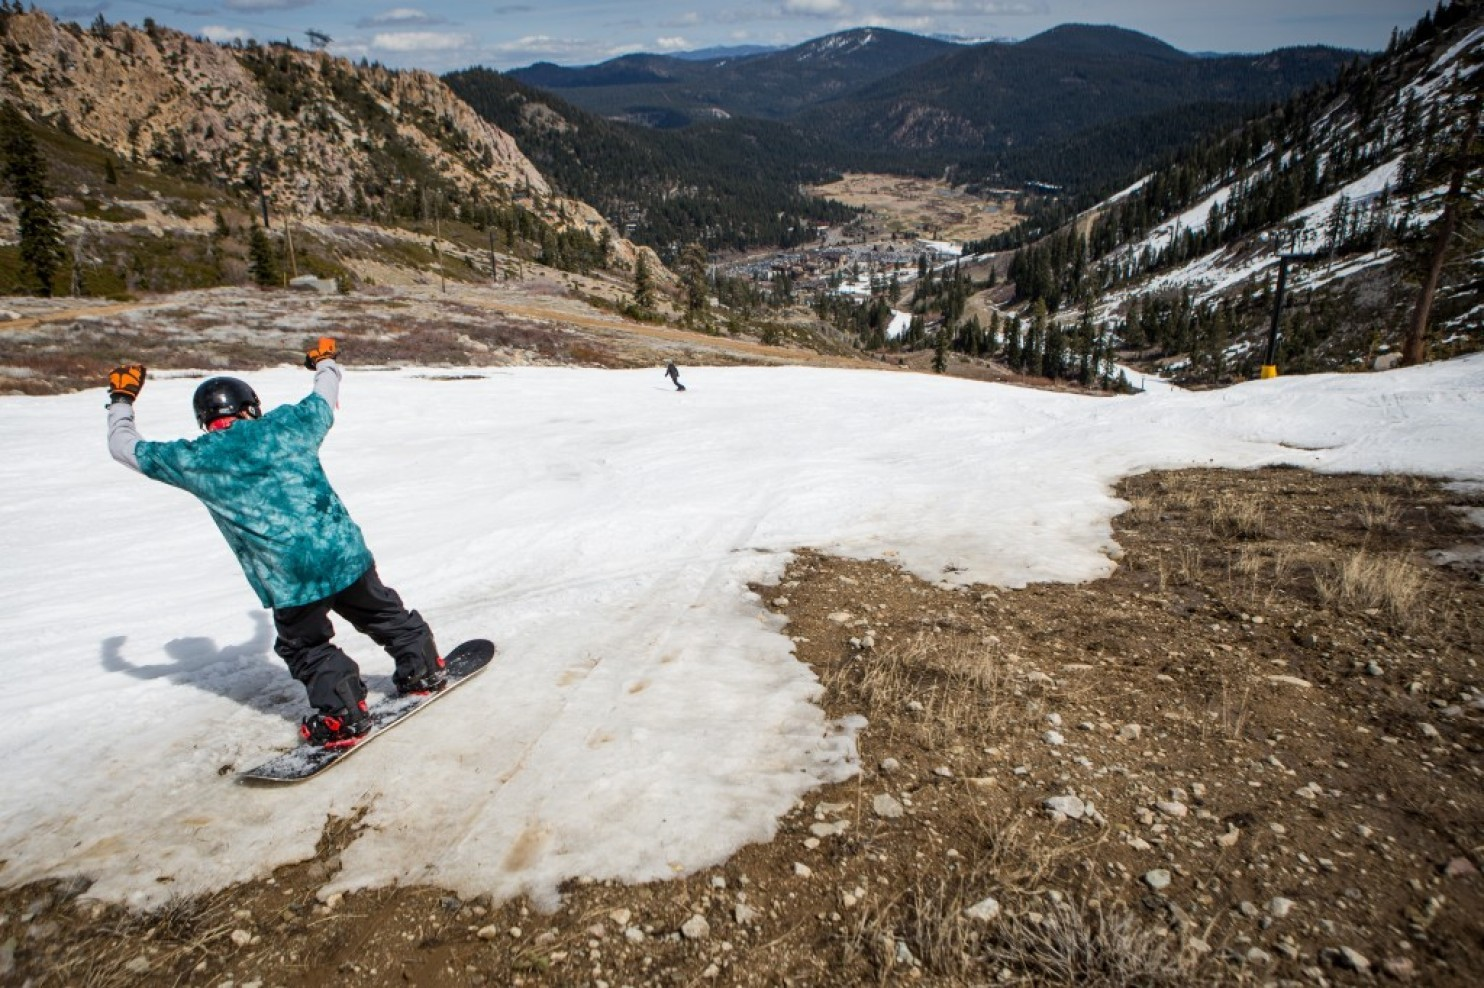 Squaw Valley, CA during last year's historically low snow year in California. photo: washingtontimes.com